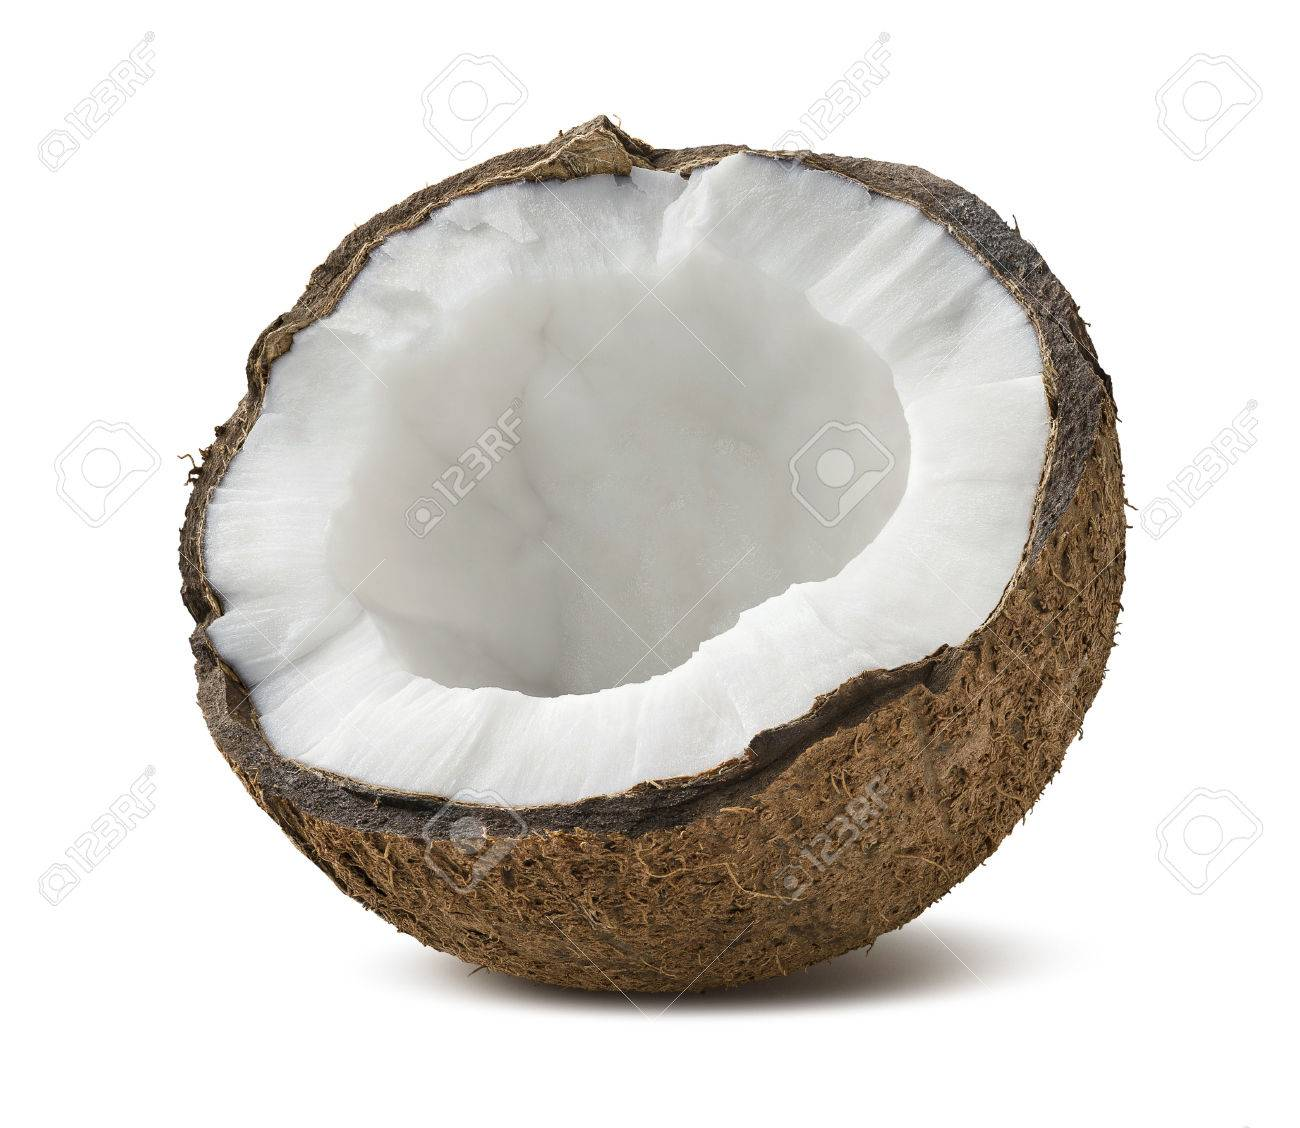 Coconut half broken isolated on white background as package design element - 50162515